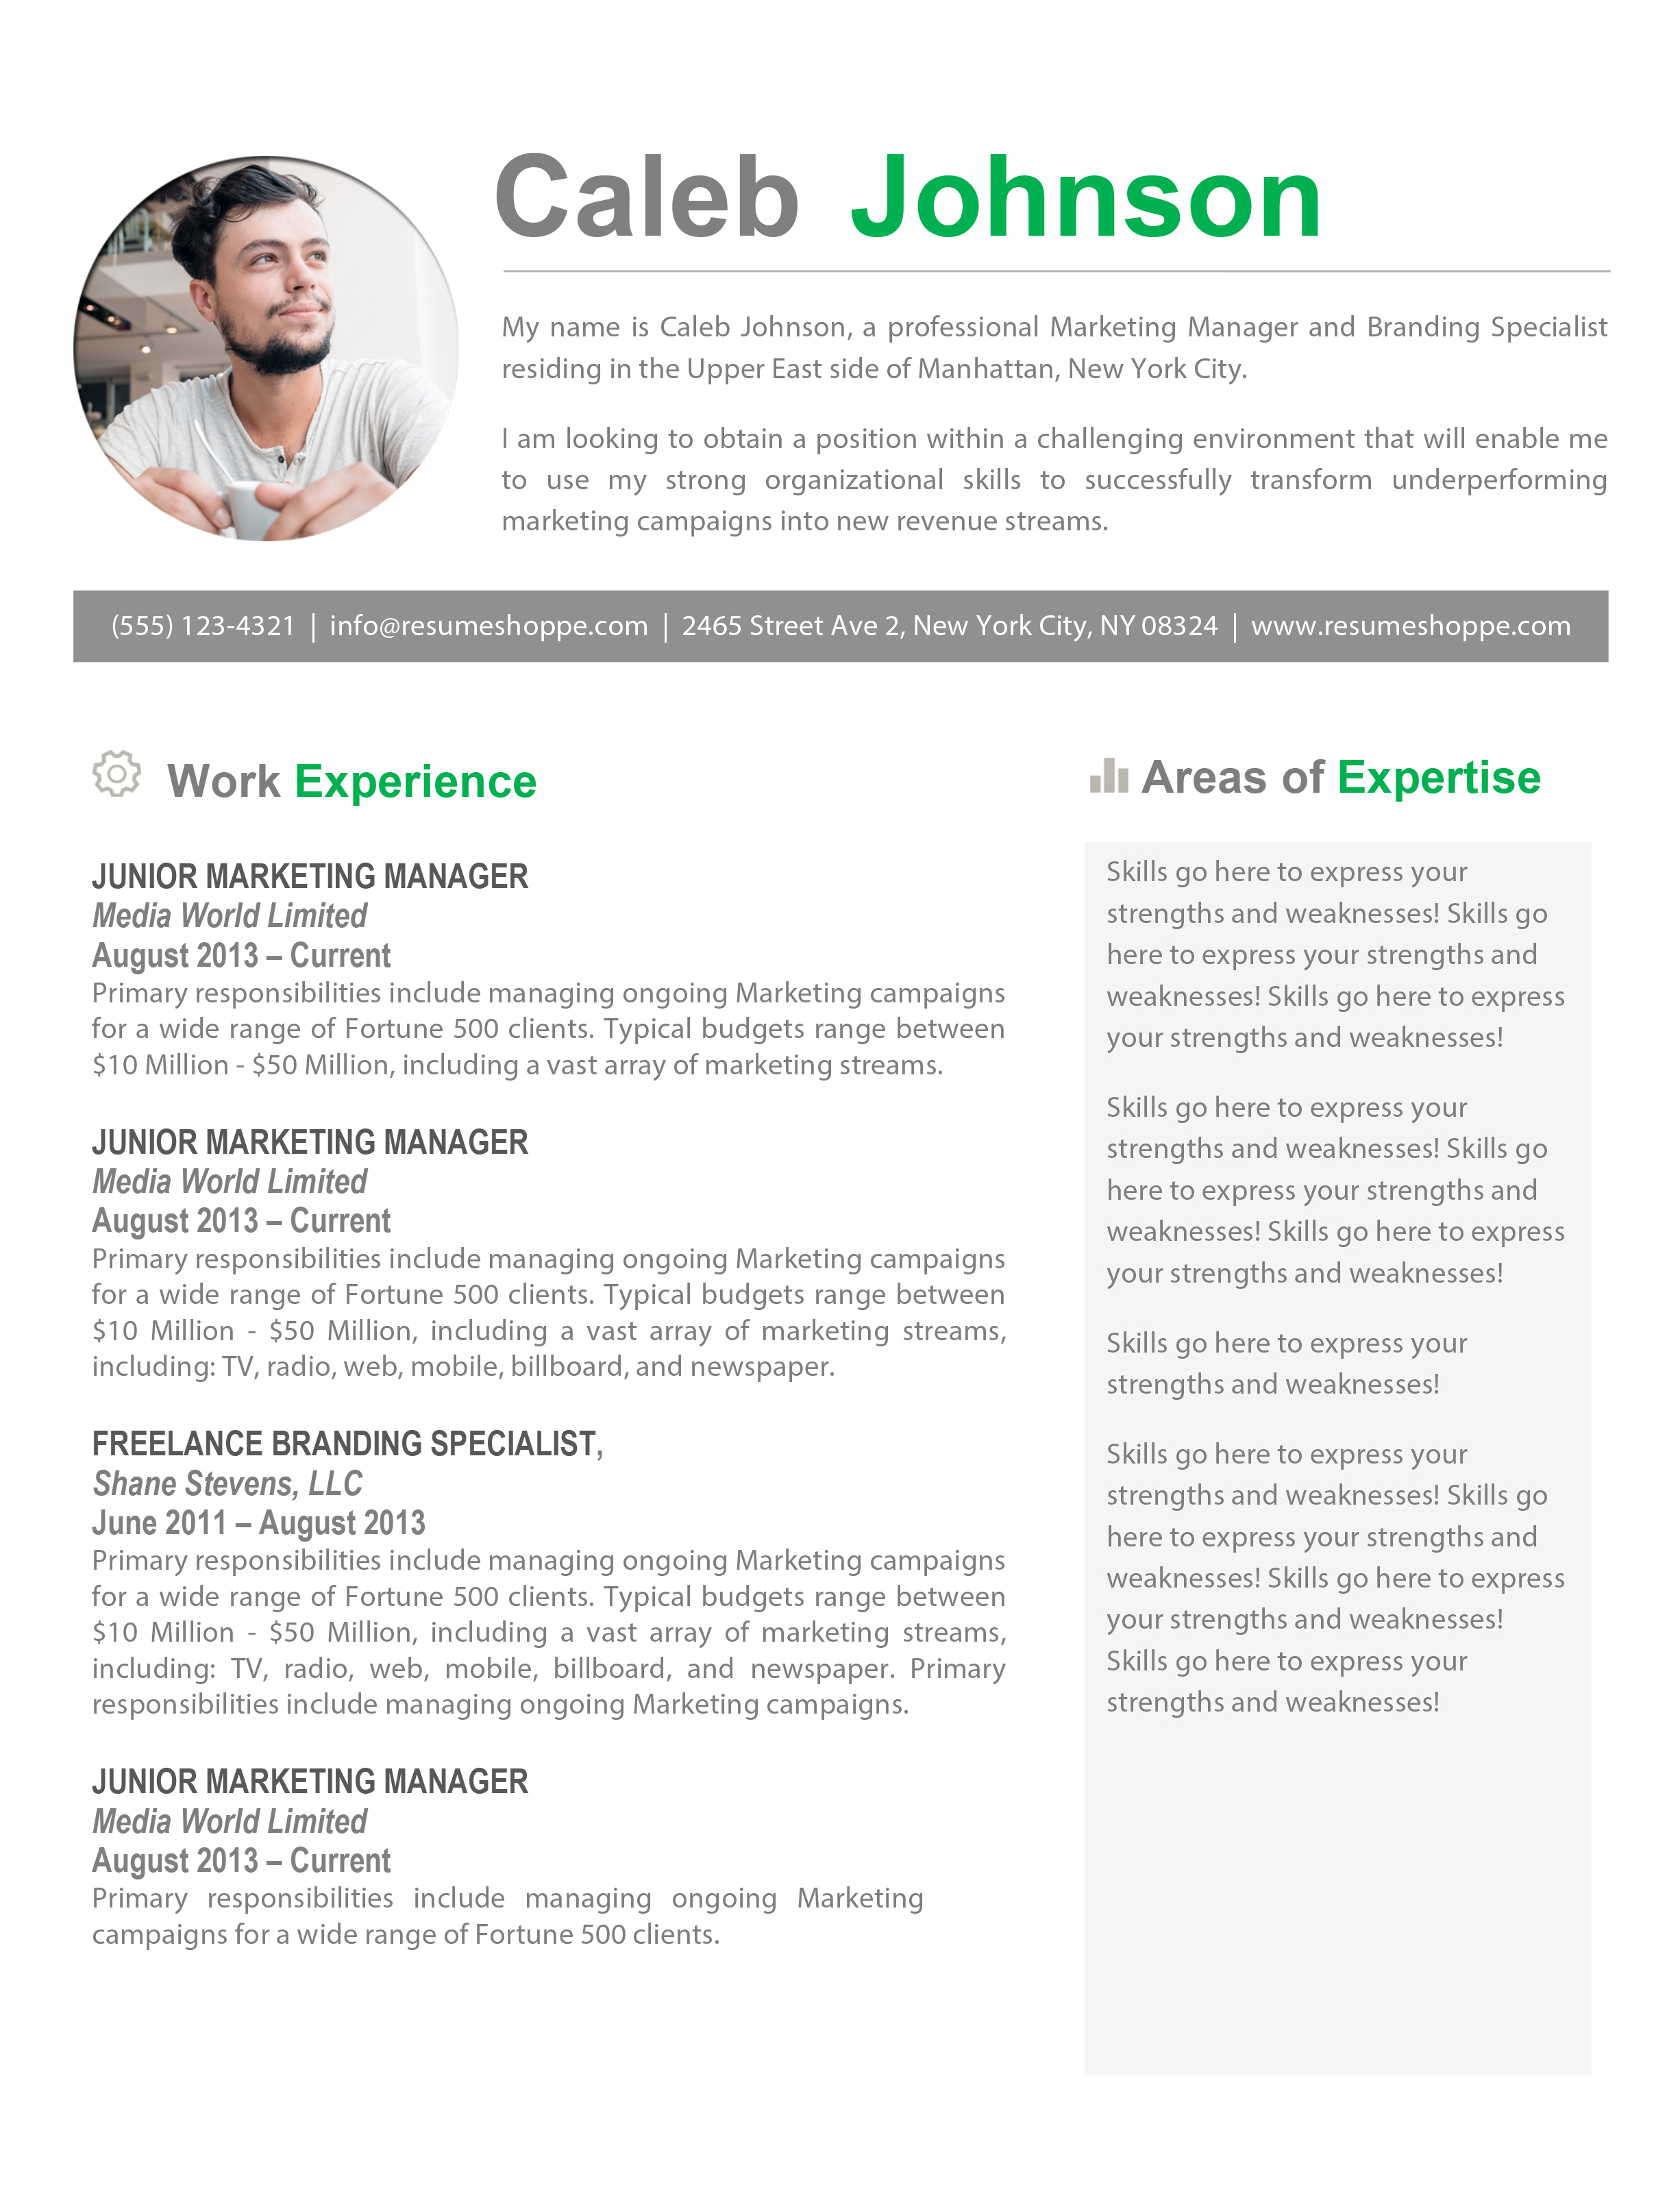 thecaleb_resume 1jpg - Mac Pages Resume Templates